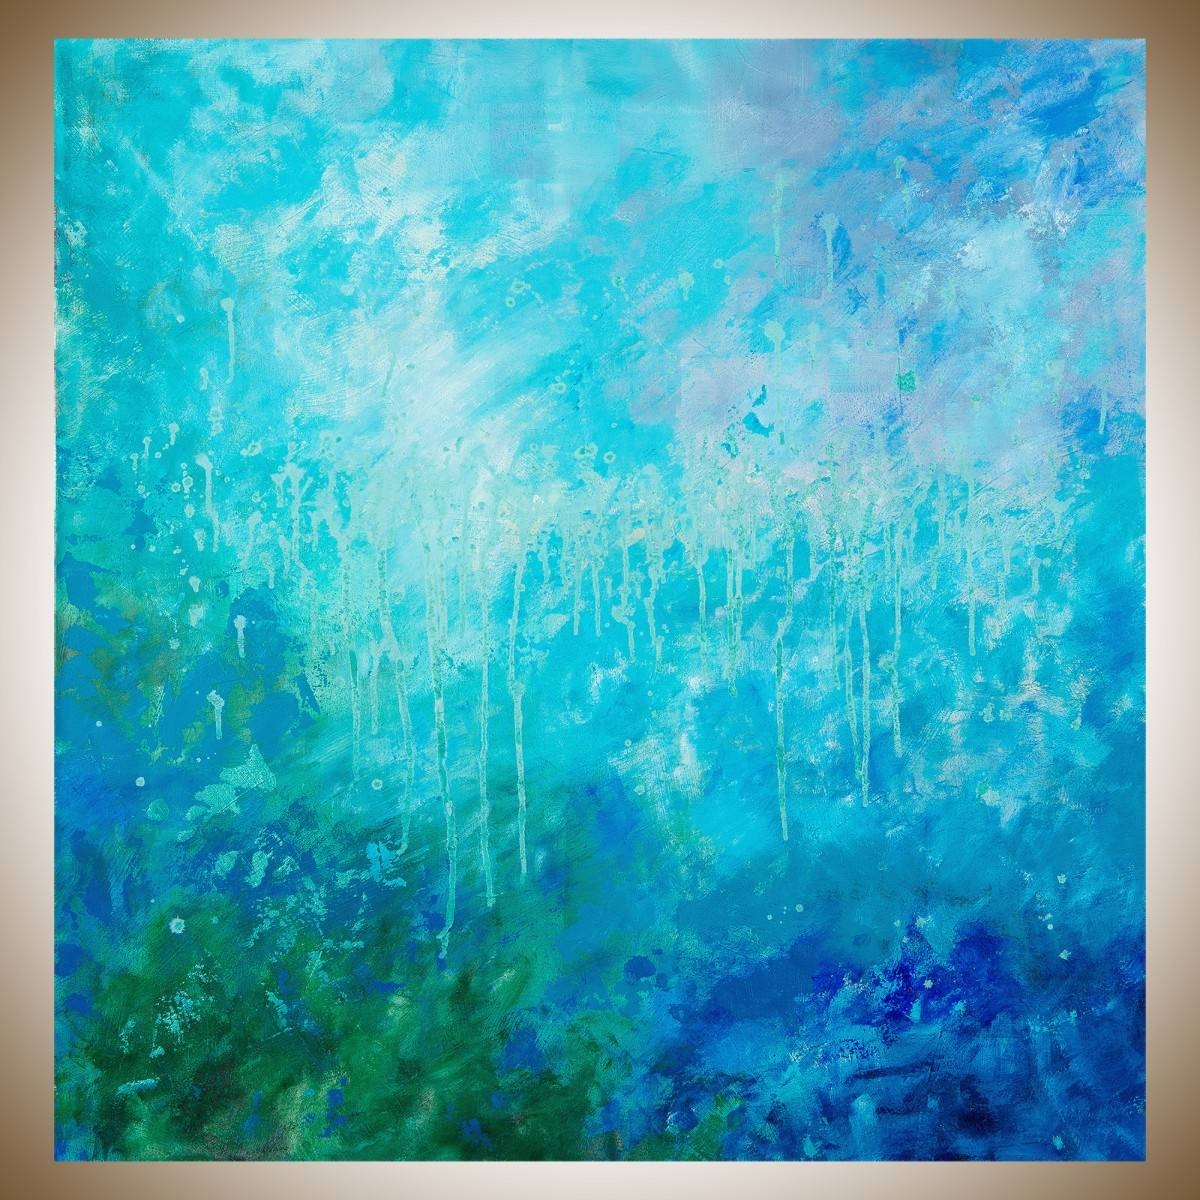 "November Showerqiqigallery 40""x40"" Un Stretched Canvas Inside Most Recent Blue And Green Wall Art (View 15 of 20)"